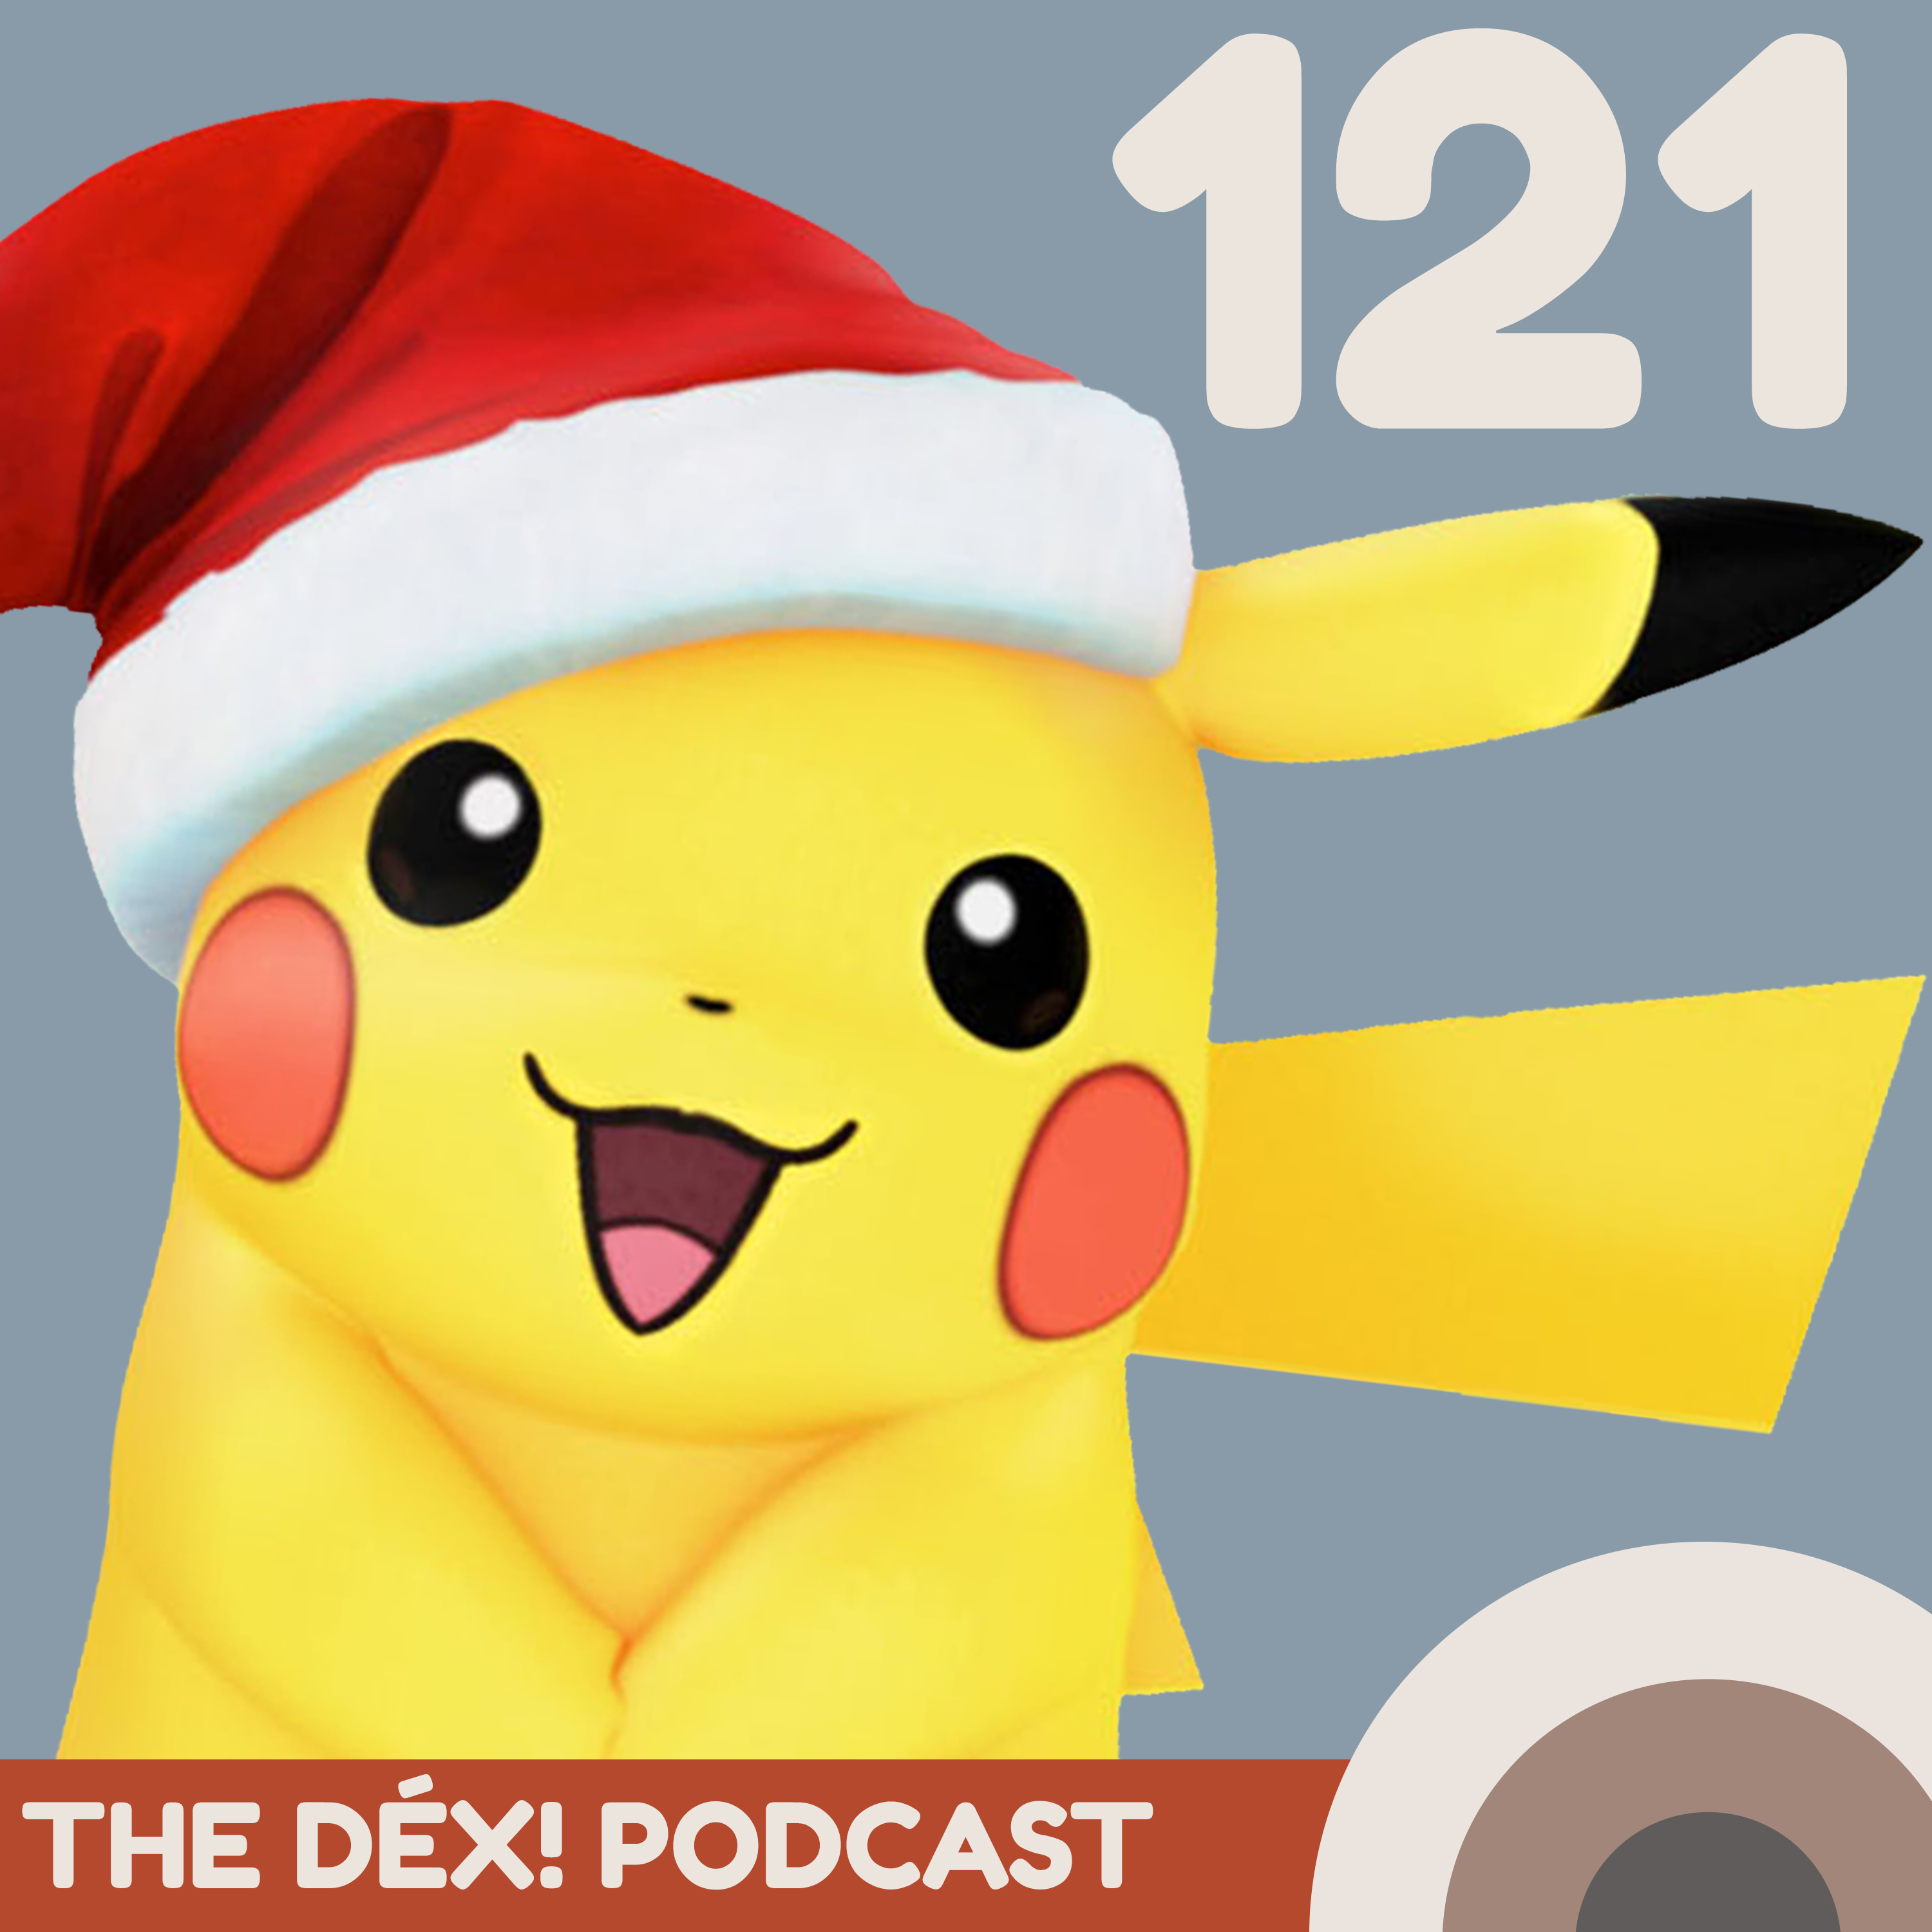 The Dex! Podcast #121: Christmas Pikachu!